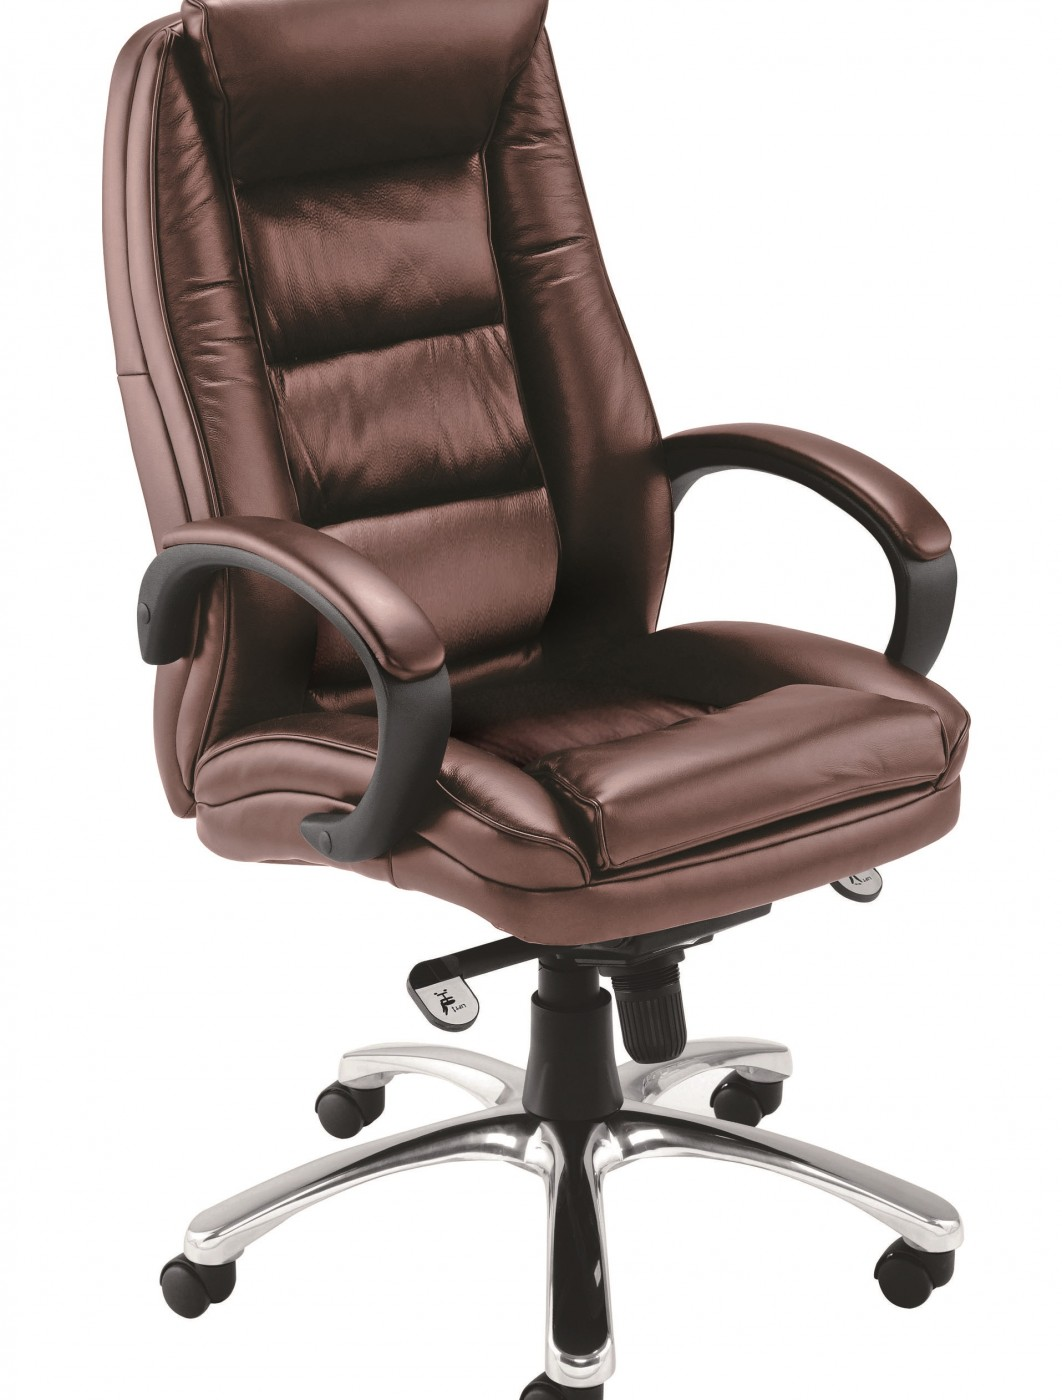 montana executive leather office chair ch0240 121 office. Black Bedroom Furniture Sets. Home Design Ideas